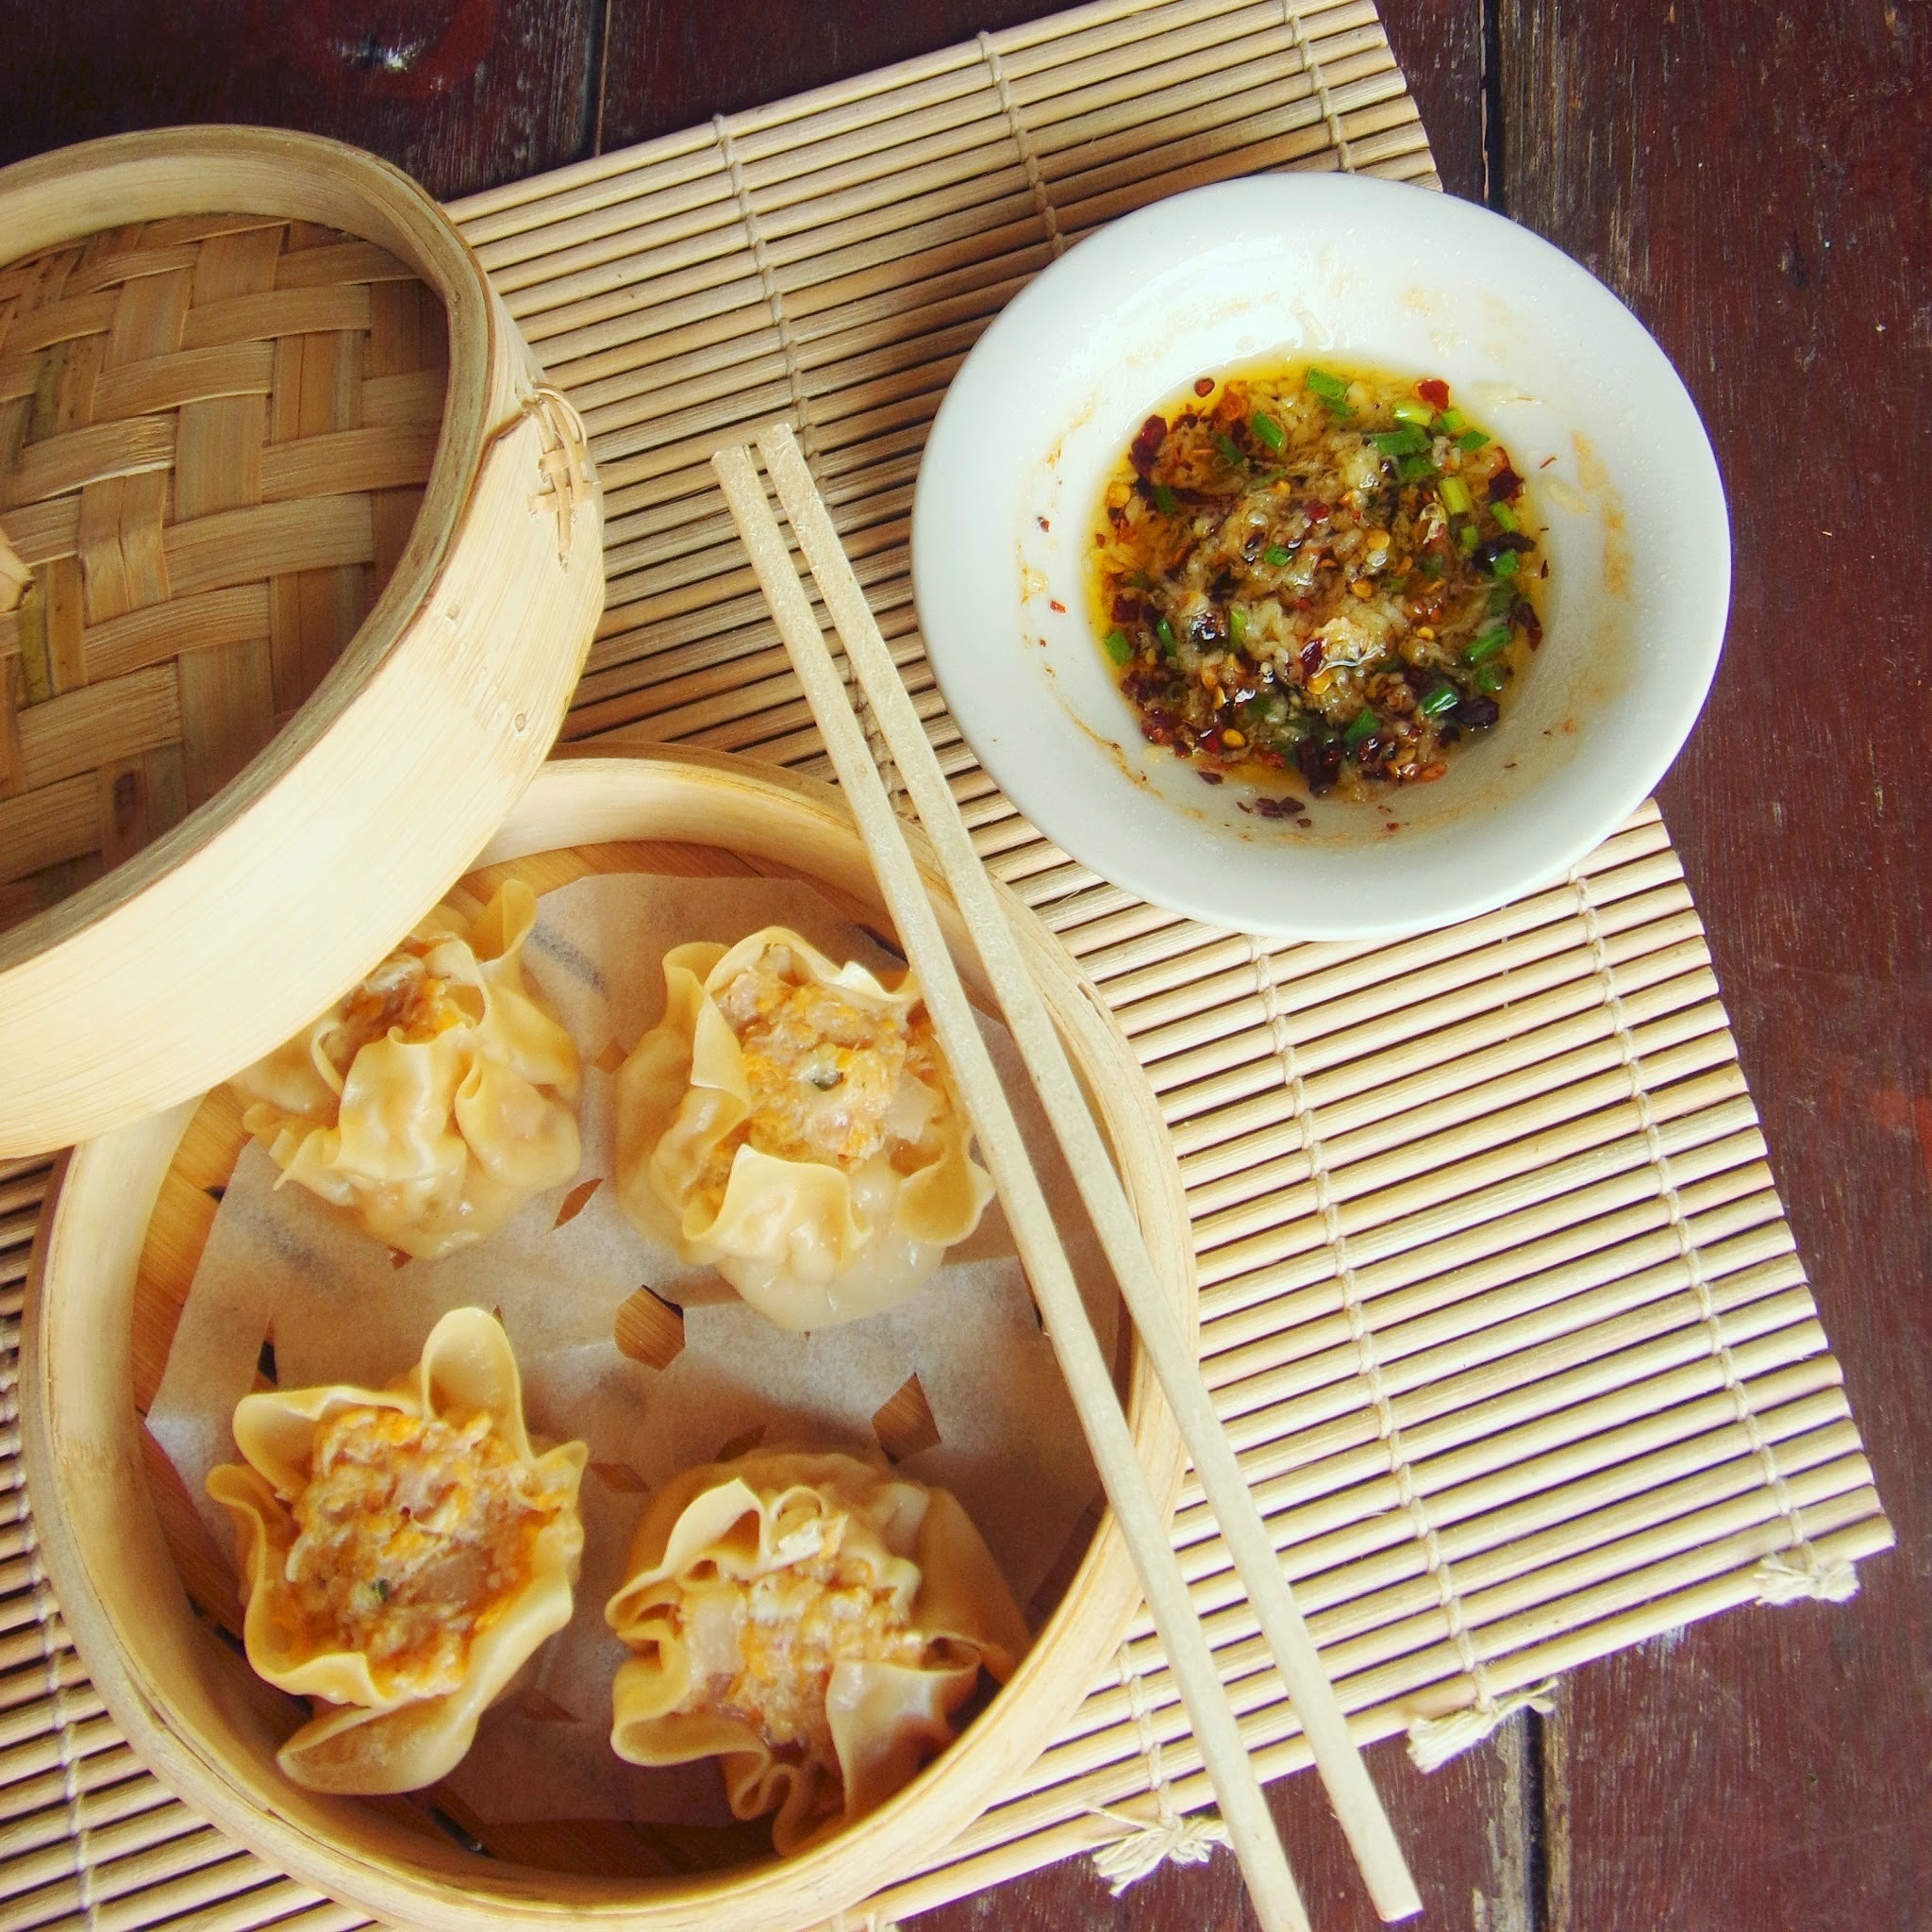 Pork, Shrimp and Crab Dumpling - Siu Mai or Siomai